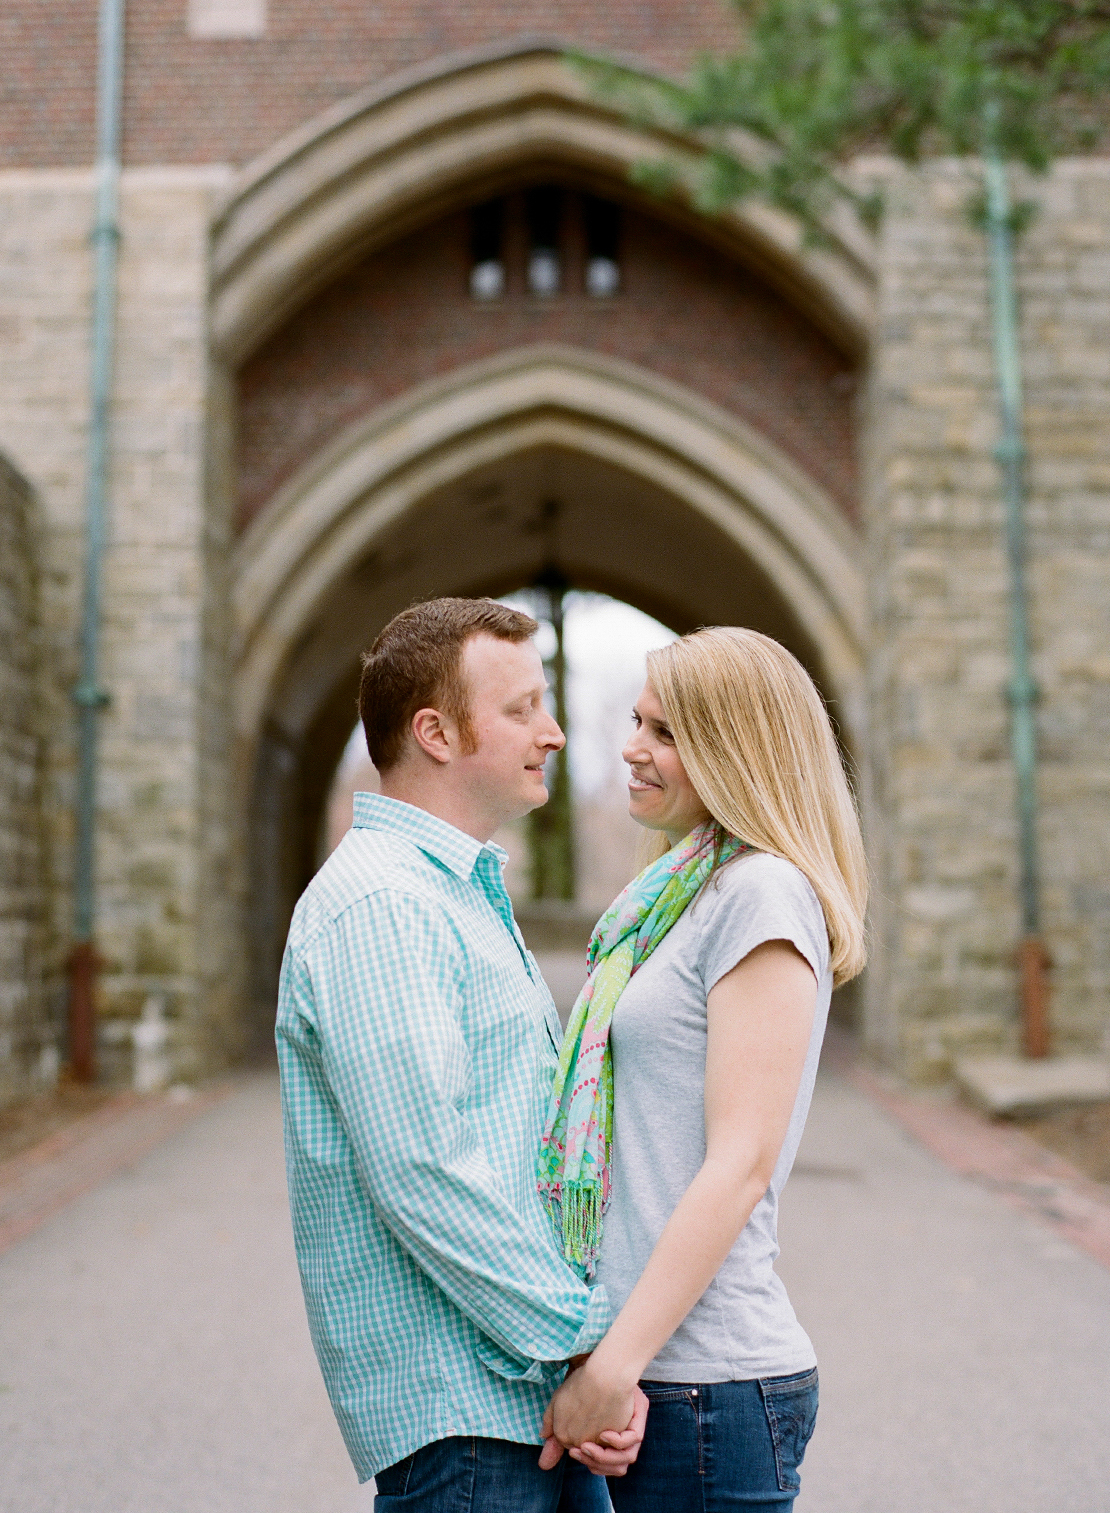 09_new_england_engagement_photography_hands_wellelsley_MA